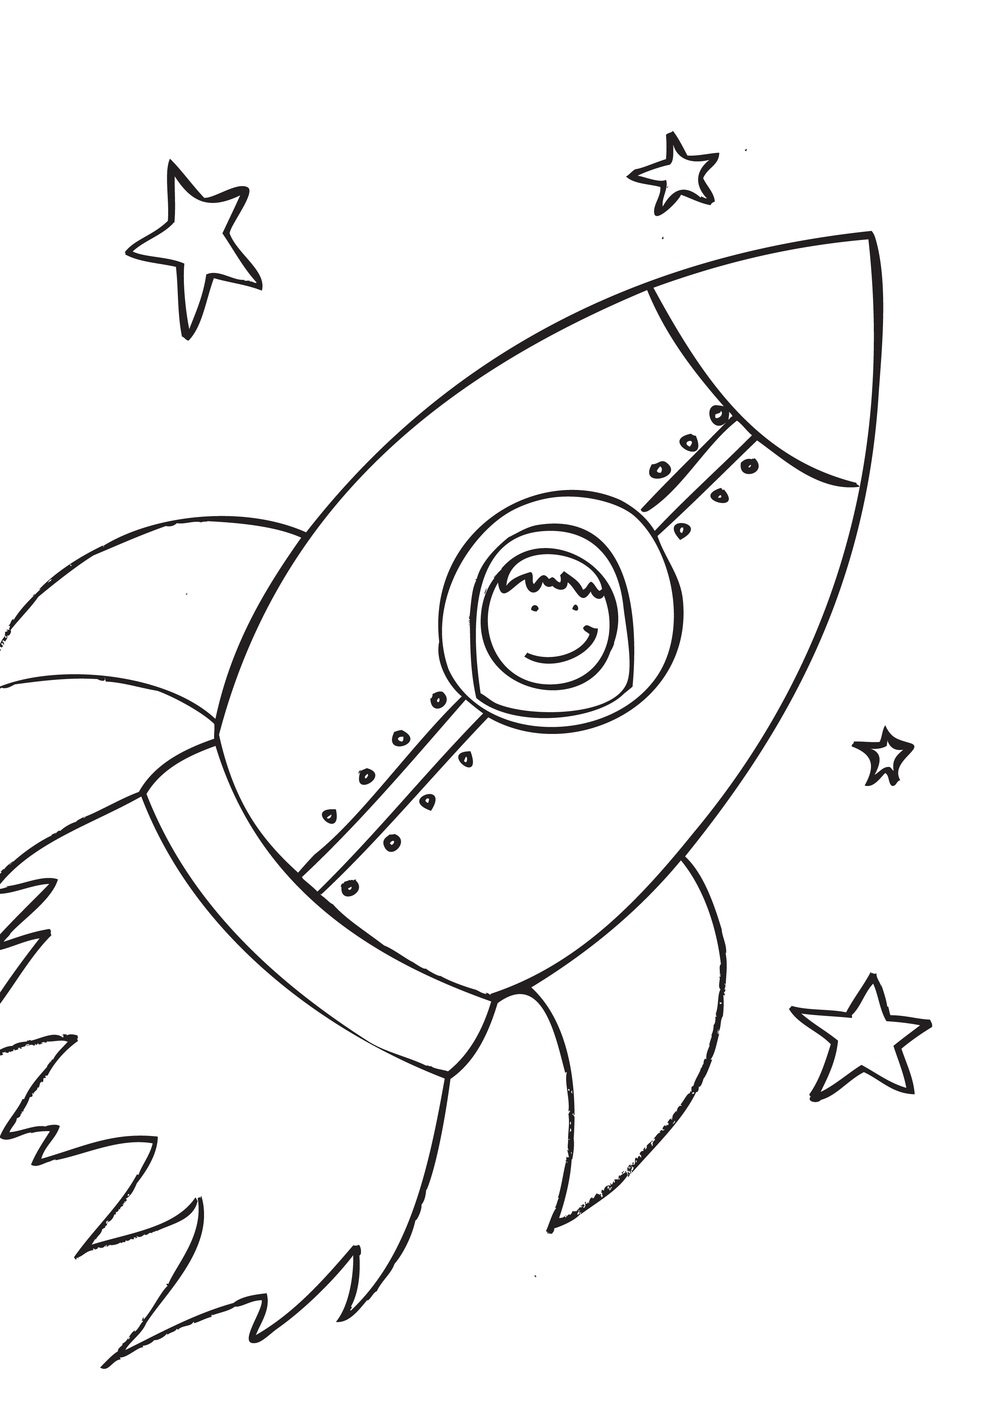 Unique Rocket Coloring Pages 47 For Seasonal Colouring Pages With